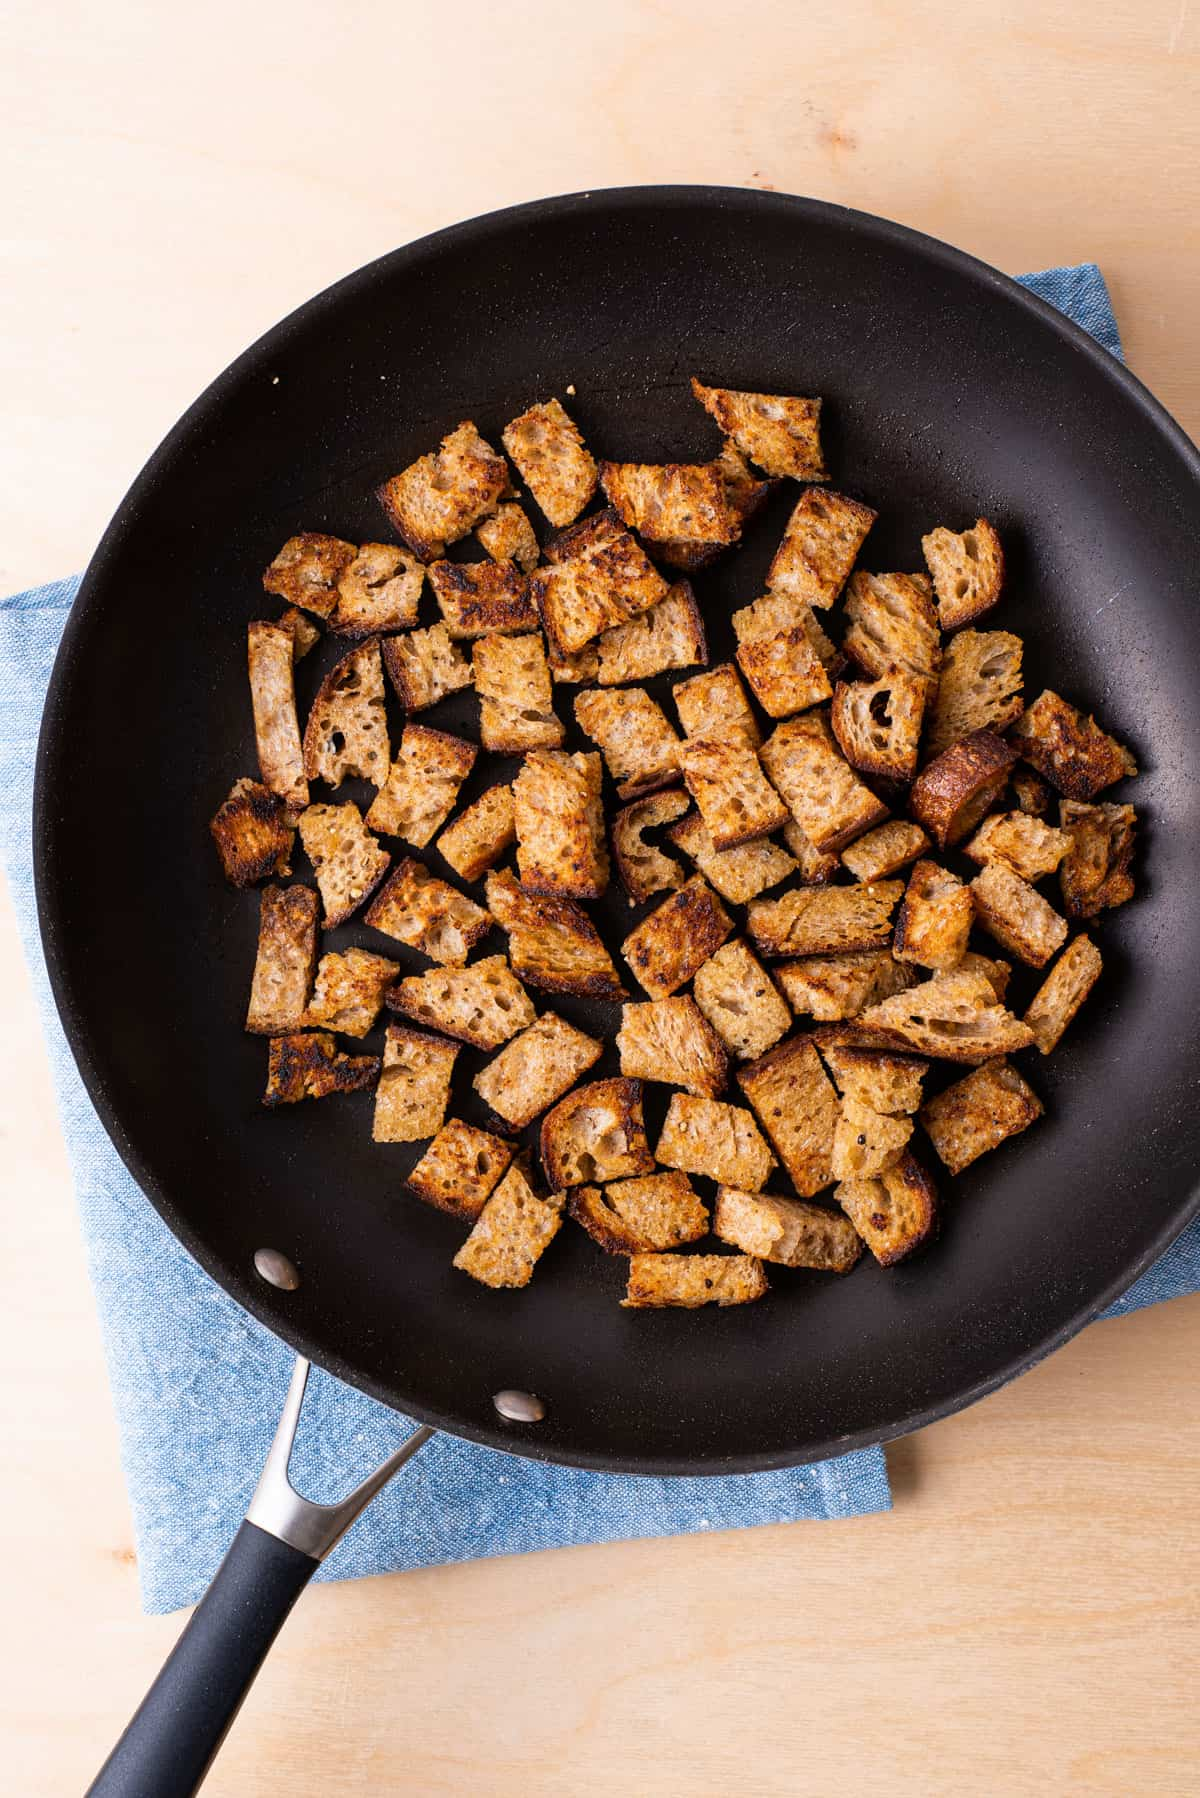 Garlic sourdough croutons in a skillet.